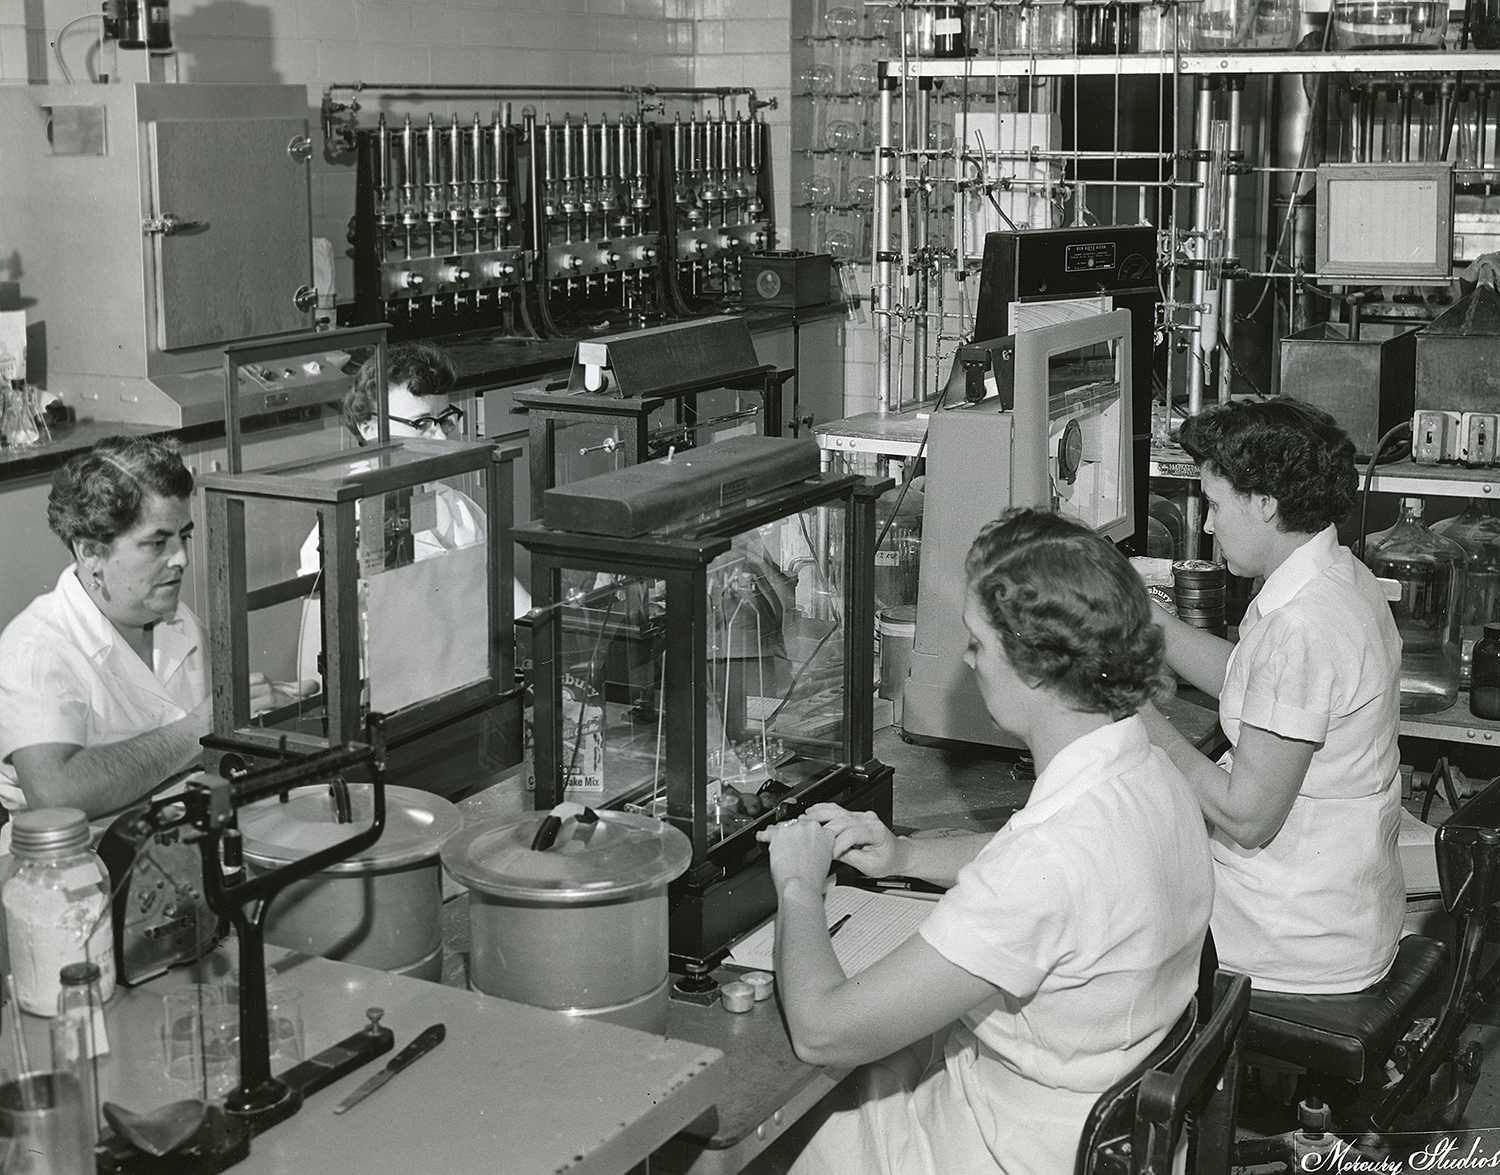 Pillsbury Mills, Sept. 2, 1955. Technicians from left, Elsie Bull, Sharon Marcellus, Pauline Rethinker and Velma Gristy in mill control laboratory. Mercury Studios collection/Sangamon Valley Collection at Lincoln Library